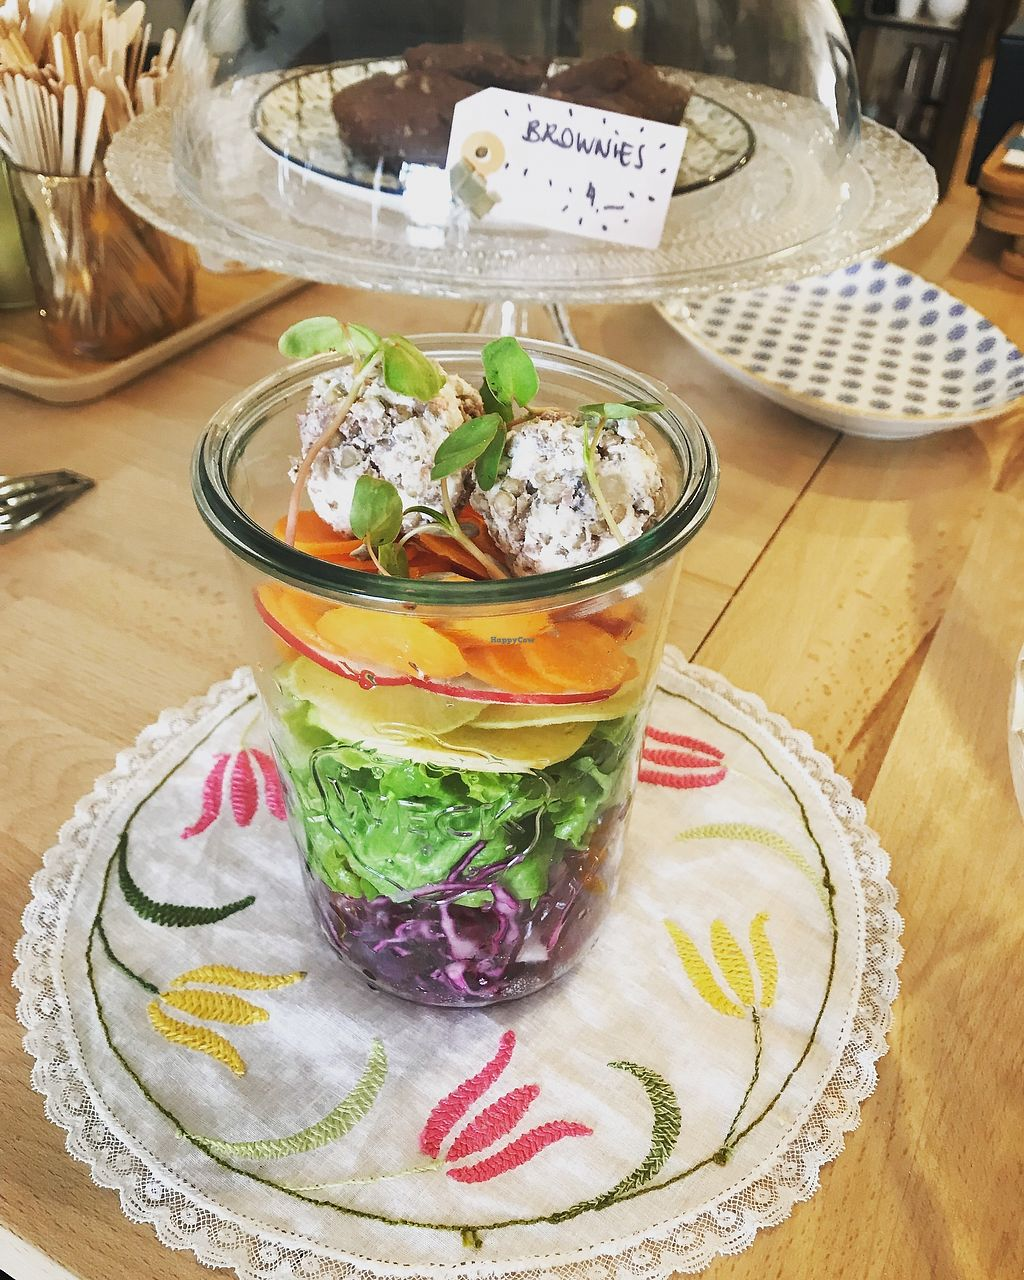 """Photo of L'Assise  by <a href=""""/members/profile/SarahKrebs"""">SarahKrebs</a> <br/>Seasonal salad  <br/> April 7, 2018  - <a href='/contact/abuse/image/116918/381822'>Report</a>"""